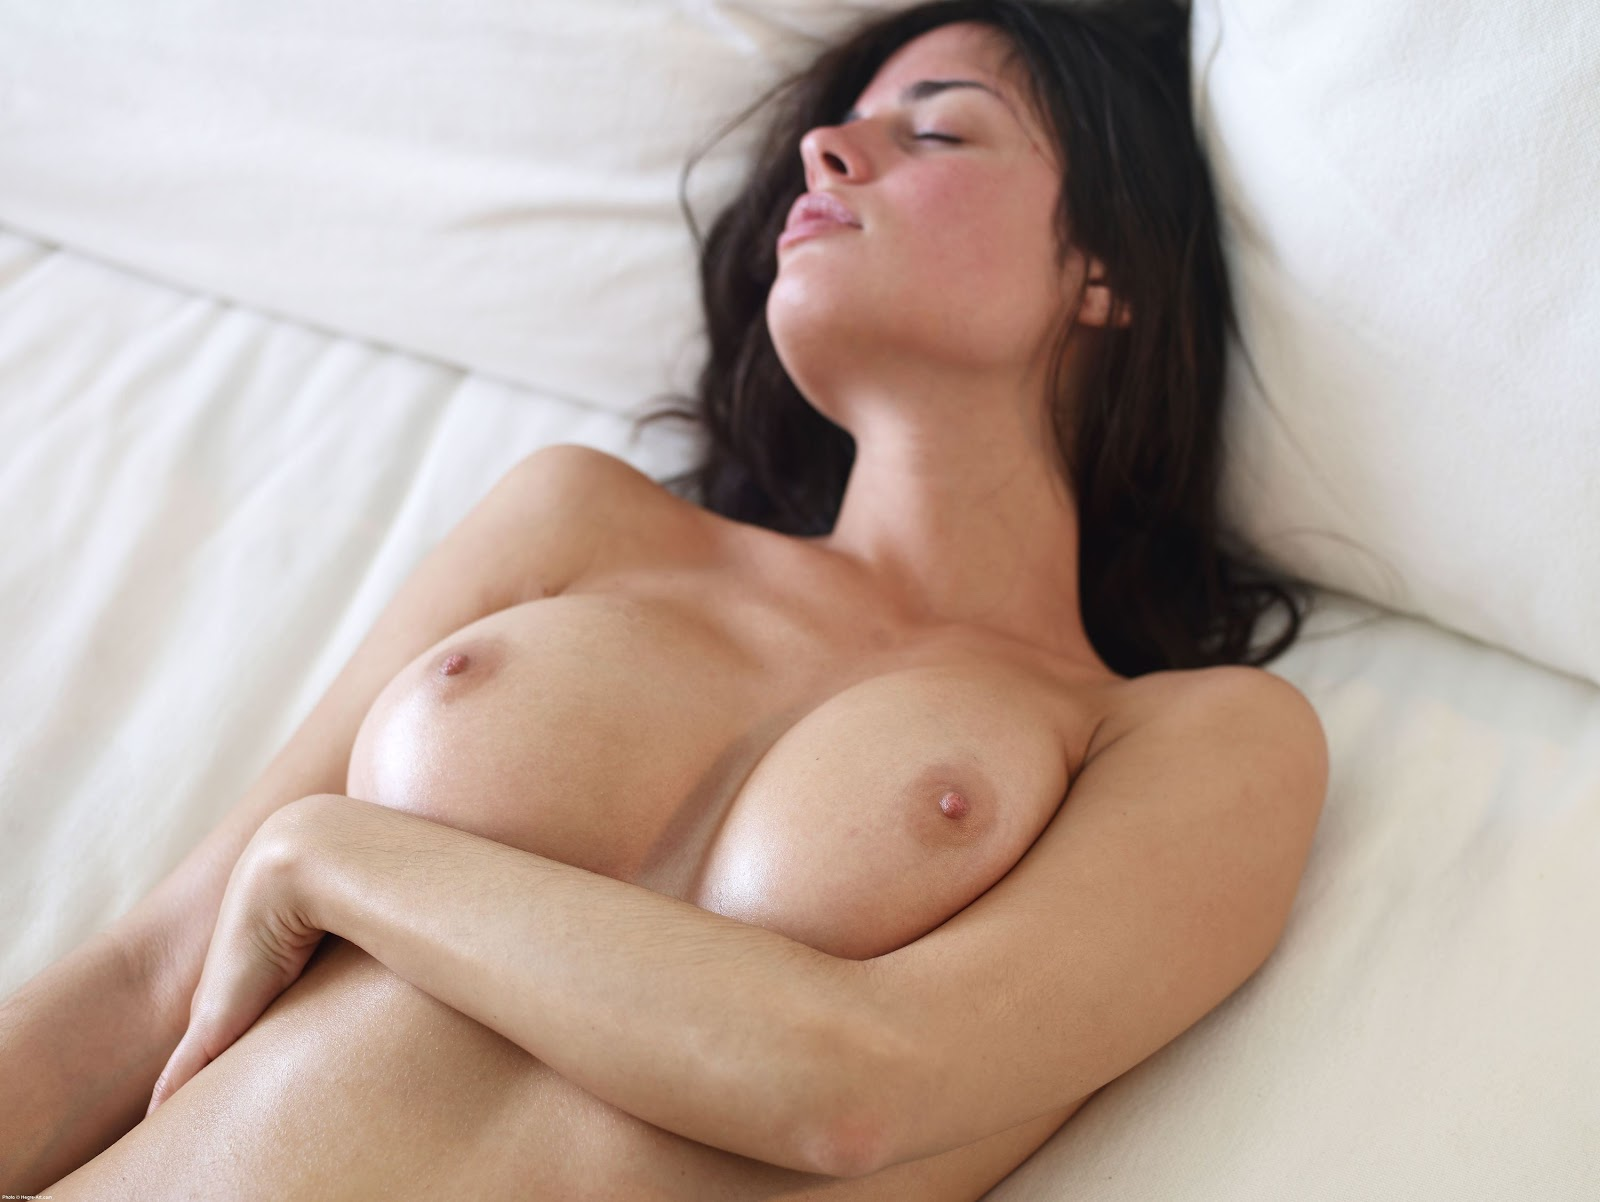 cheating girlfreind naked pics